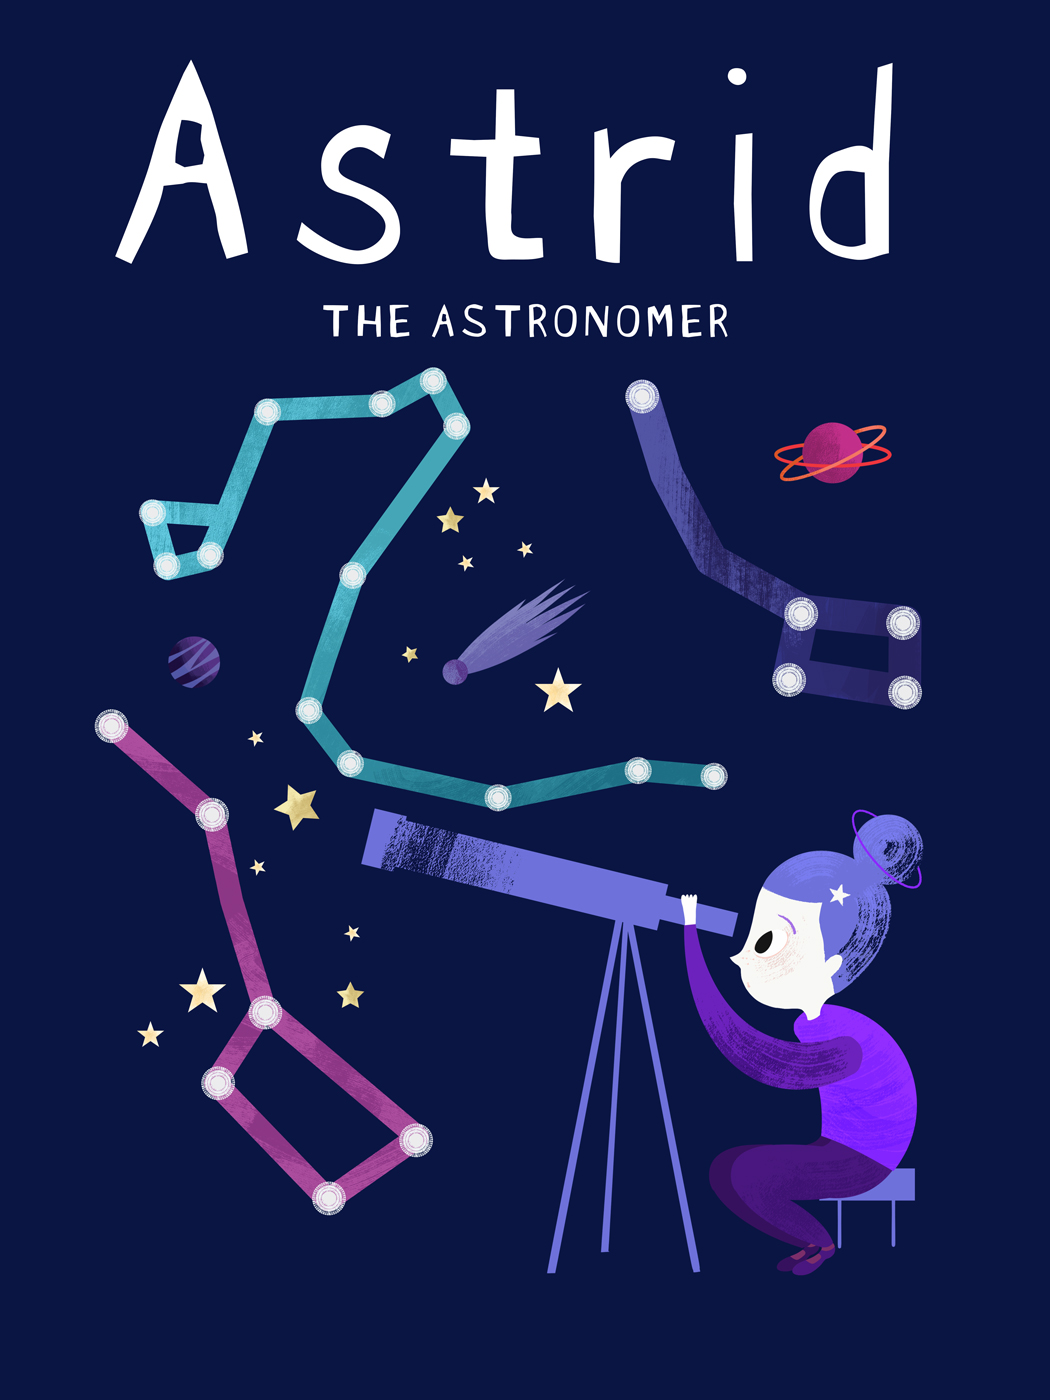 Astrid the Astronomer